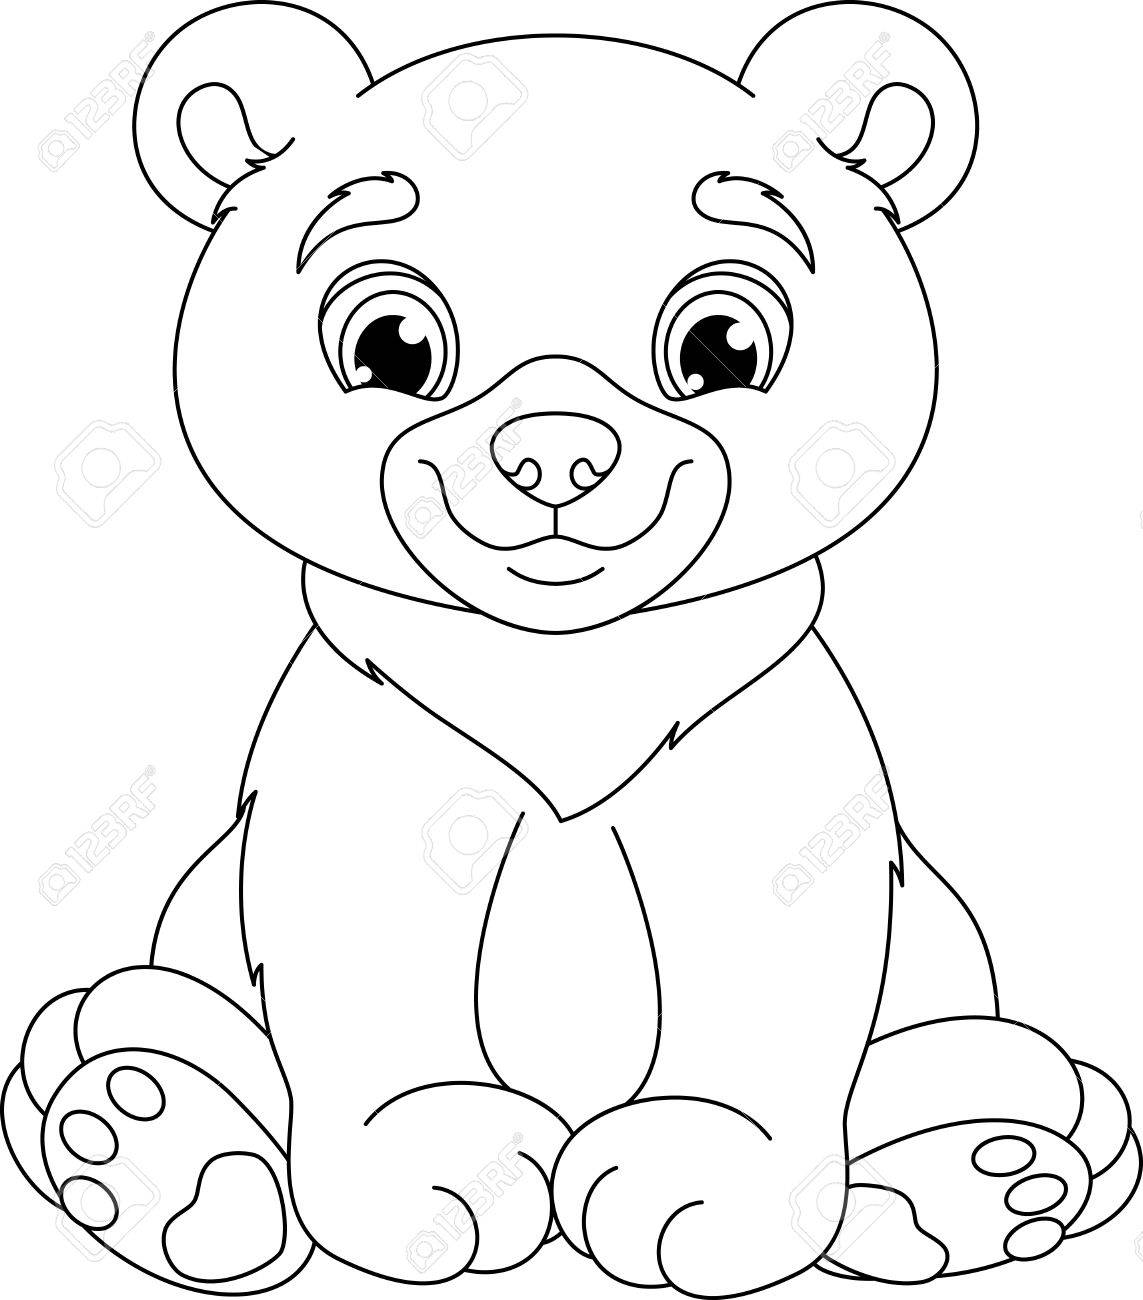 Teddy Bear Coloring Page Royalty Free Cliparts, Vectors, And Stock ...